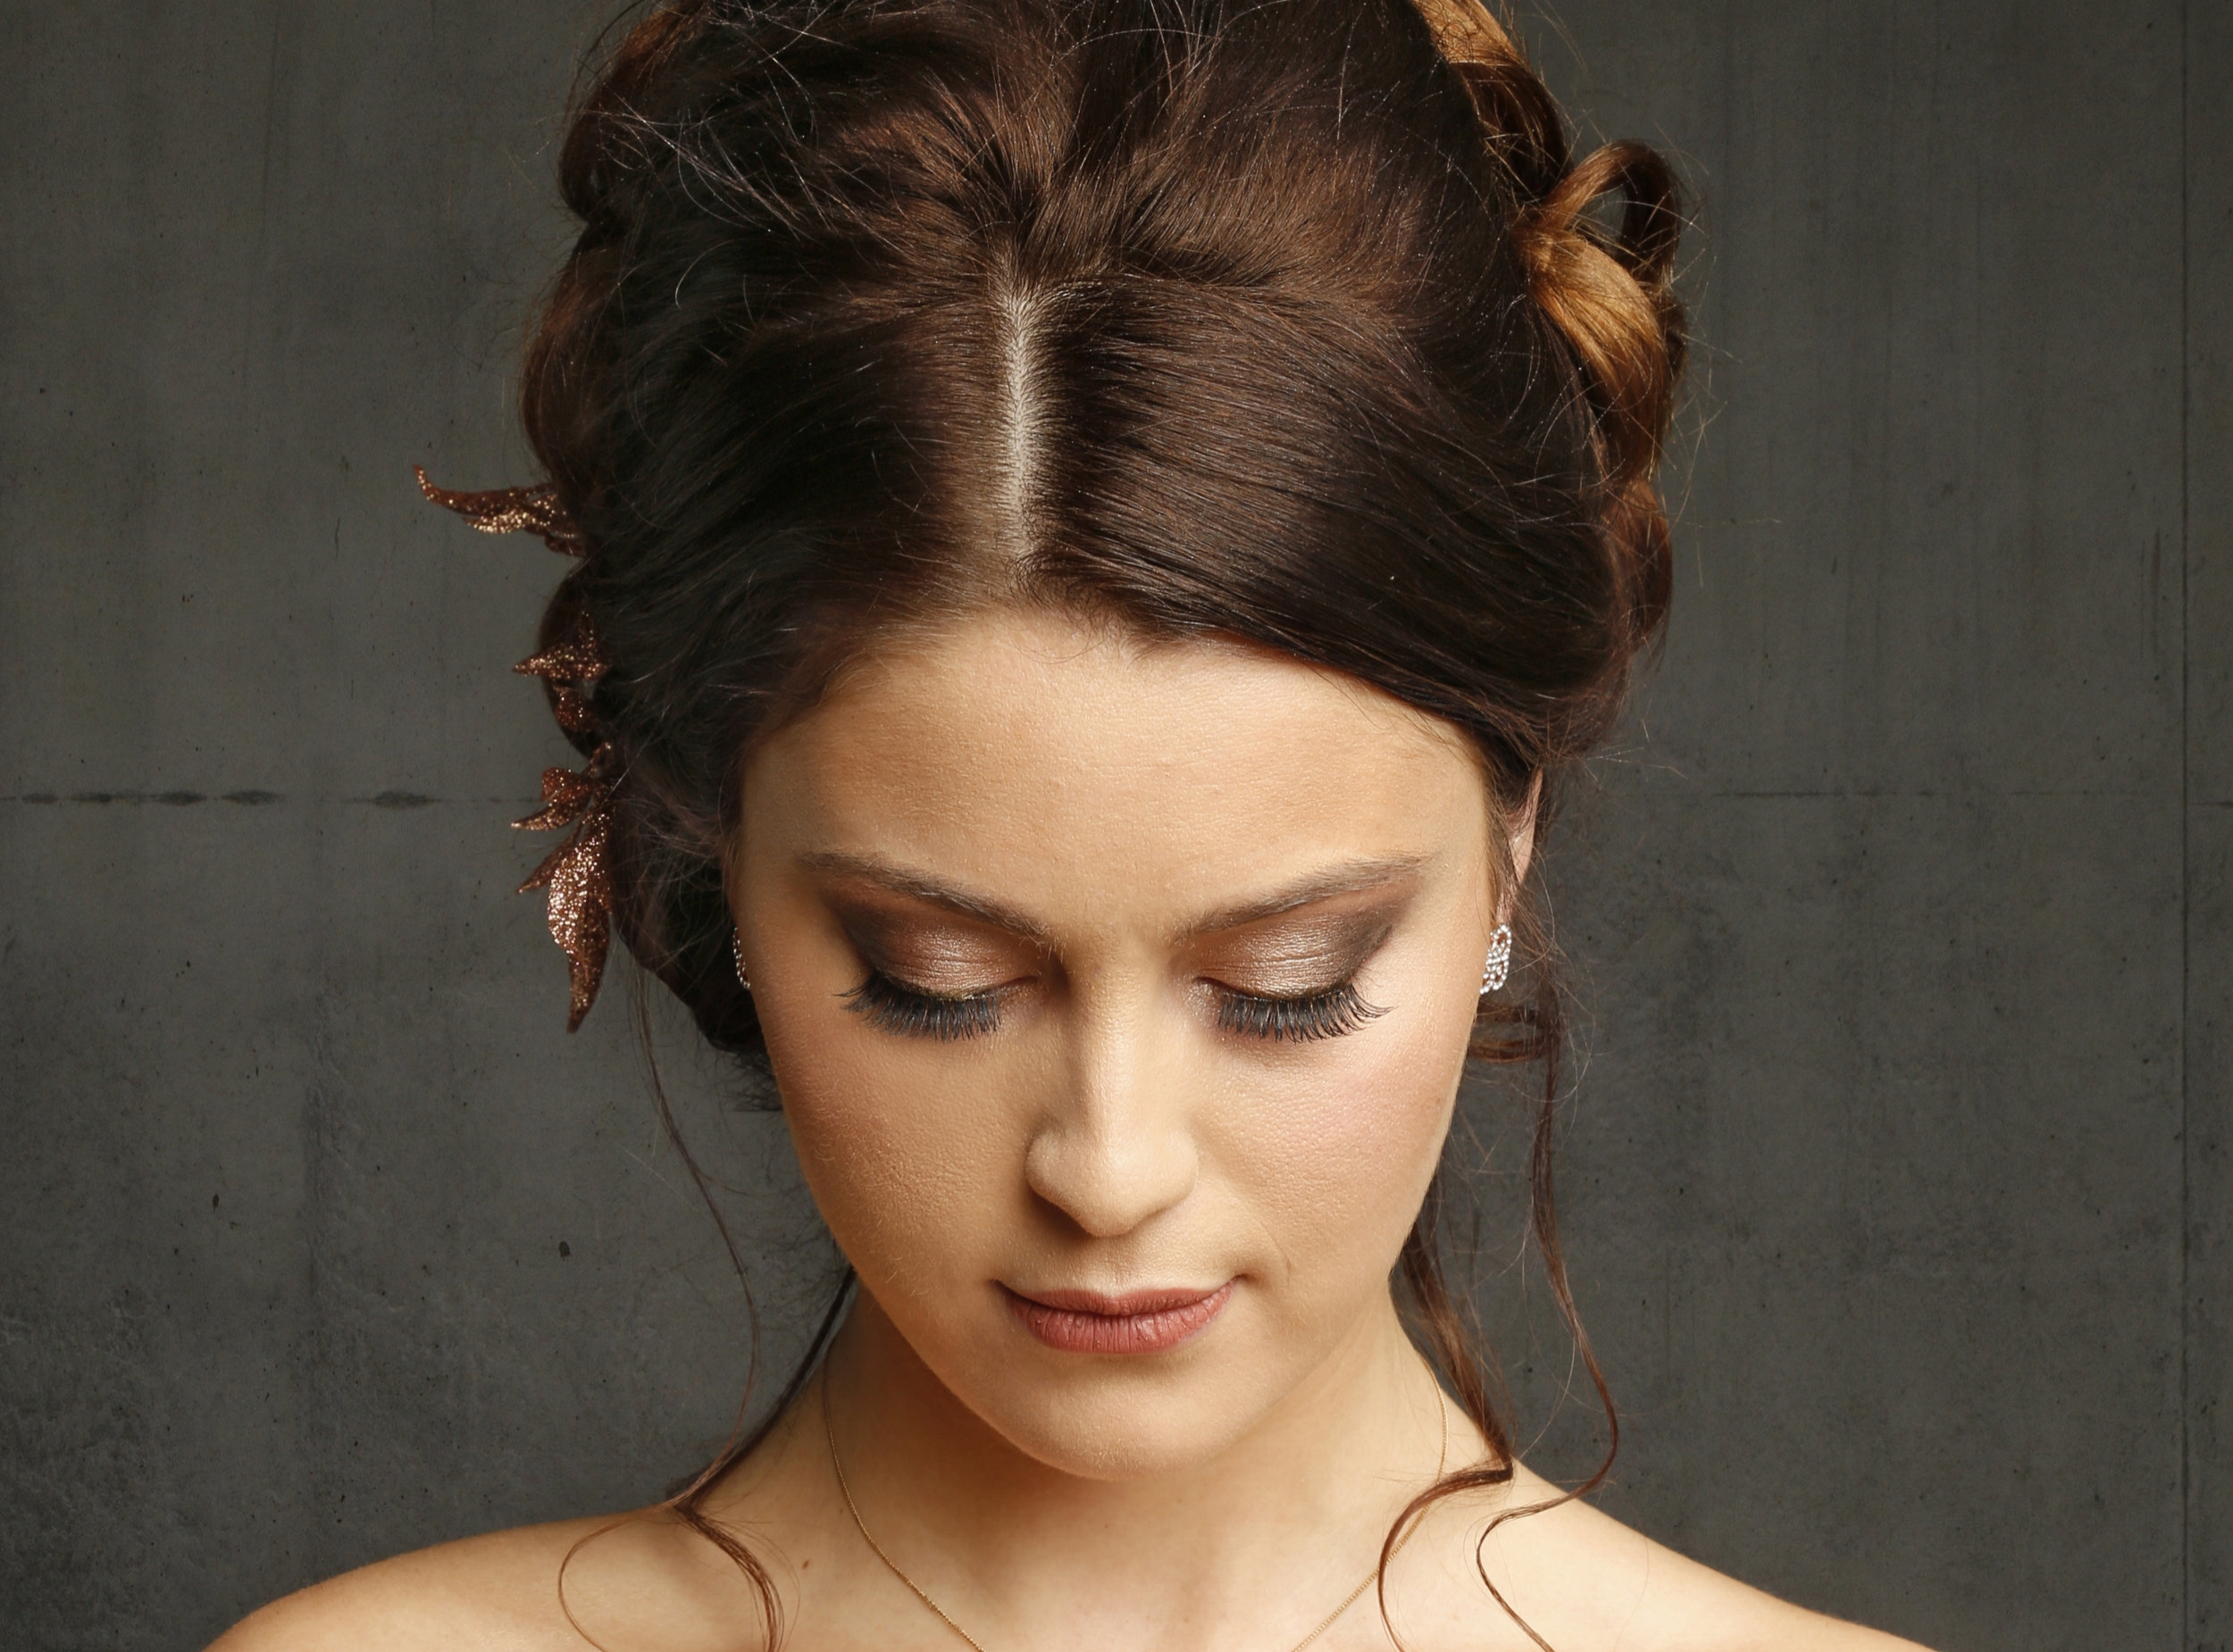 Hair by Paulette Valentino. Makeup by Nina Carlone. Michael Christopher Salon, Cleveland, OH.-101.jpg